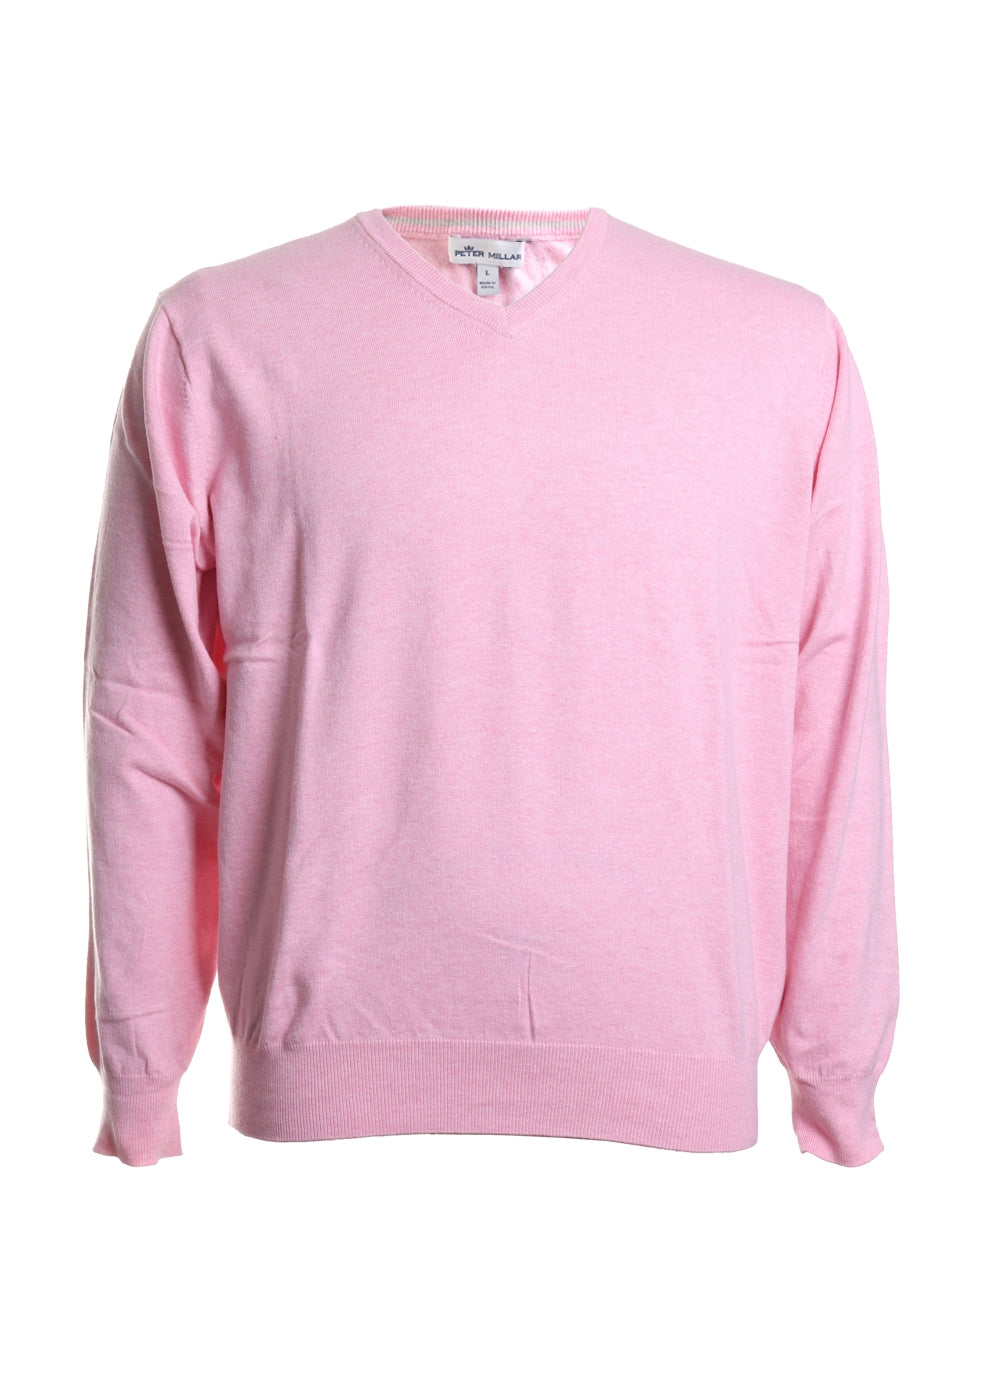 Soft Cotton Long Sleeve V Neck Sweater